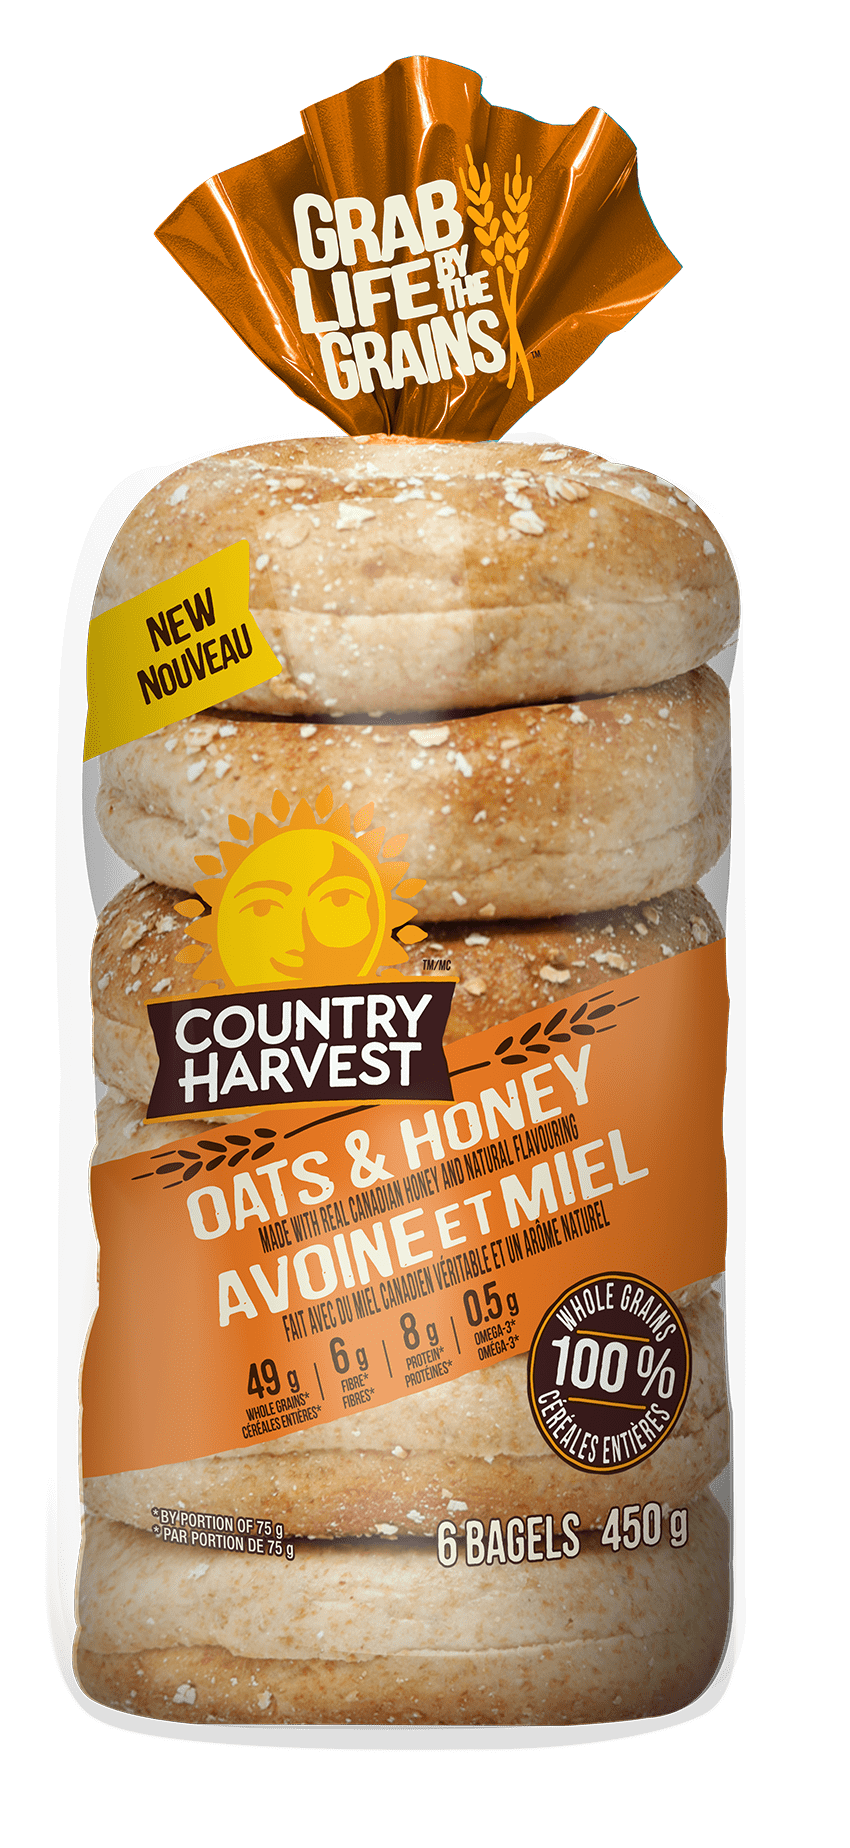 Country Harvest Oats and Honey bagel